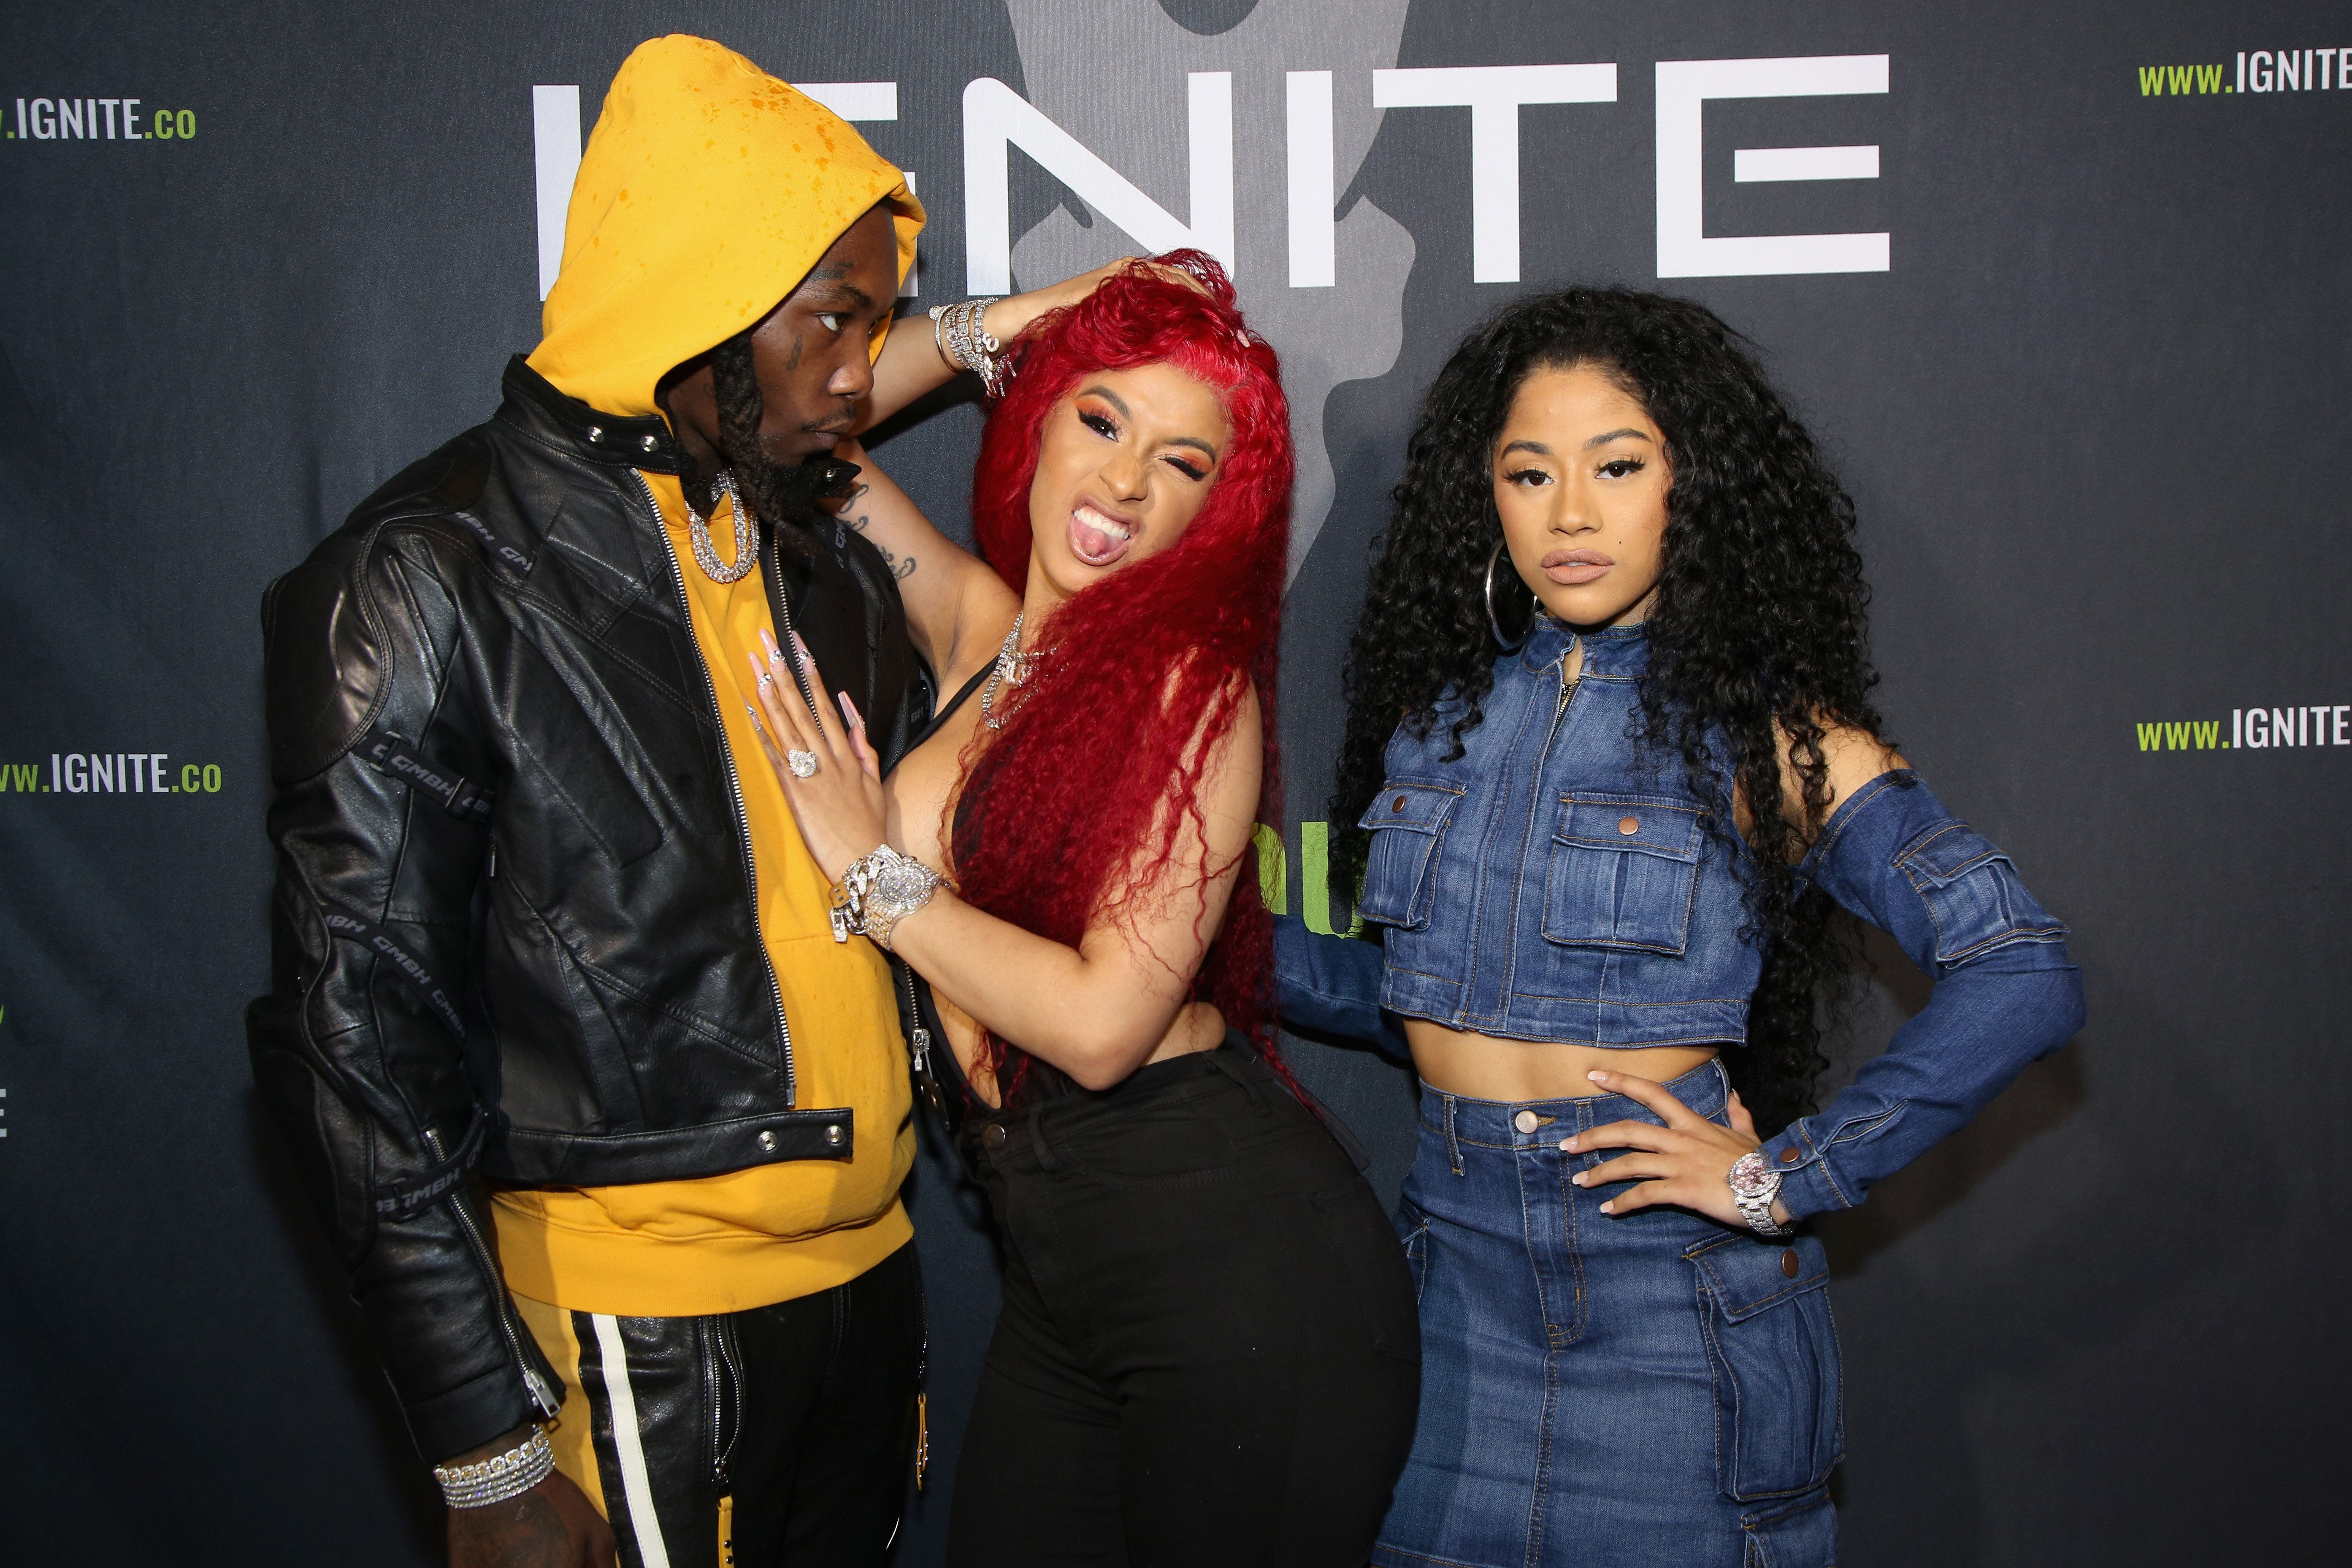 BEL AIR, CA - FEBRUARY 13:  Offset, Cardi B and Hennessy Carolina attend Ignite's Angels and Devils Pre-Valentine's Day Party on February 13, 2019 in Bel Air, California.  (Photo by Randall Michelson/Getty Images for Ignite)